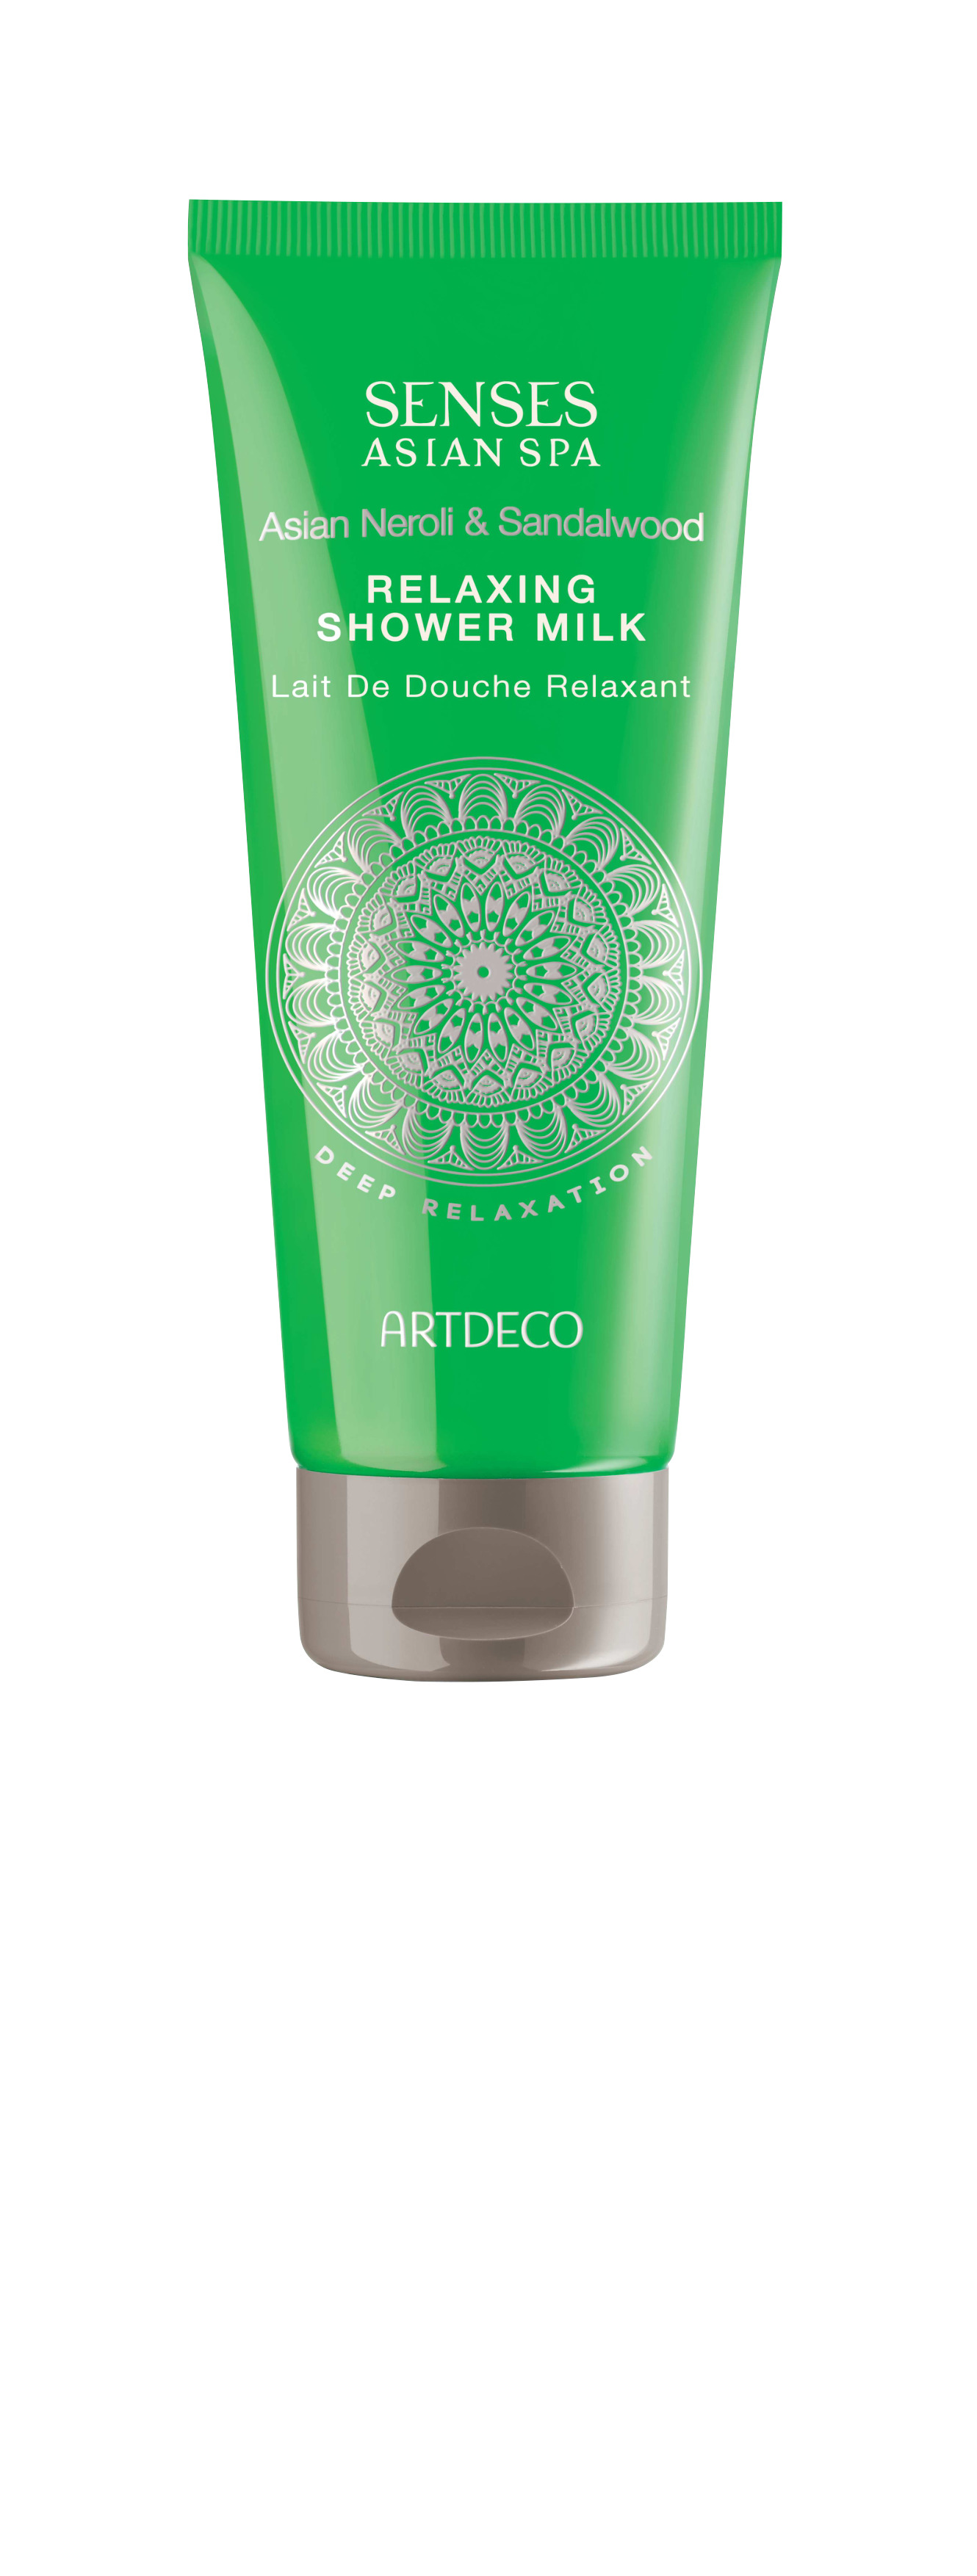 Artdeco молочко для душа успокаиващее Relaxing shower milk, deep relaxation, 200 мл скраб artdeco deep exfoliating foot scrub deep relaxation